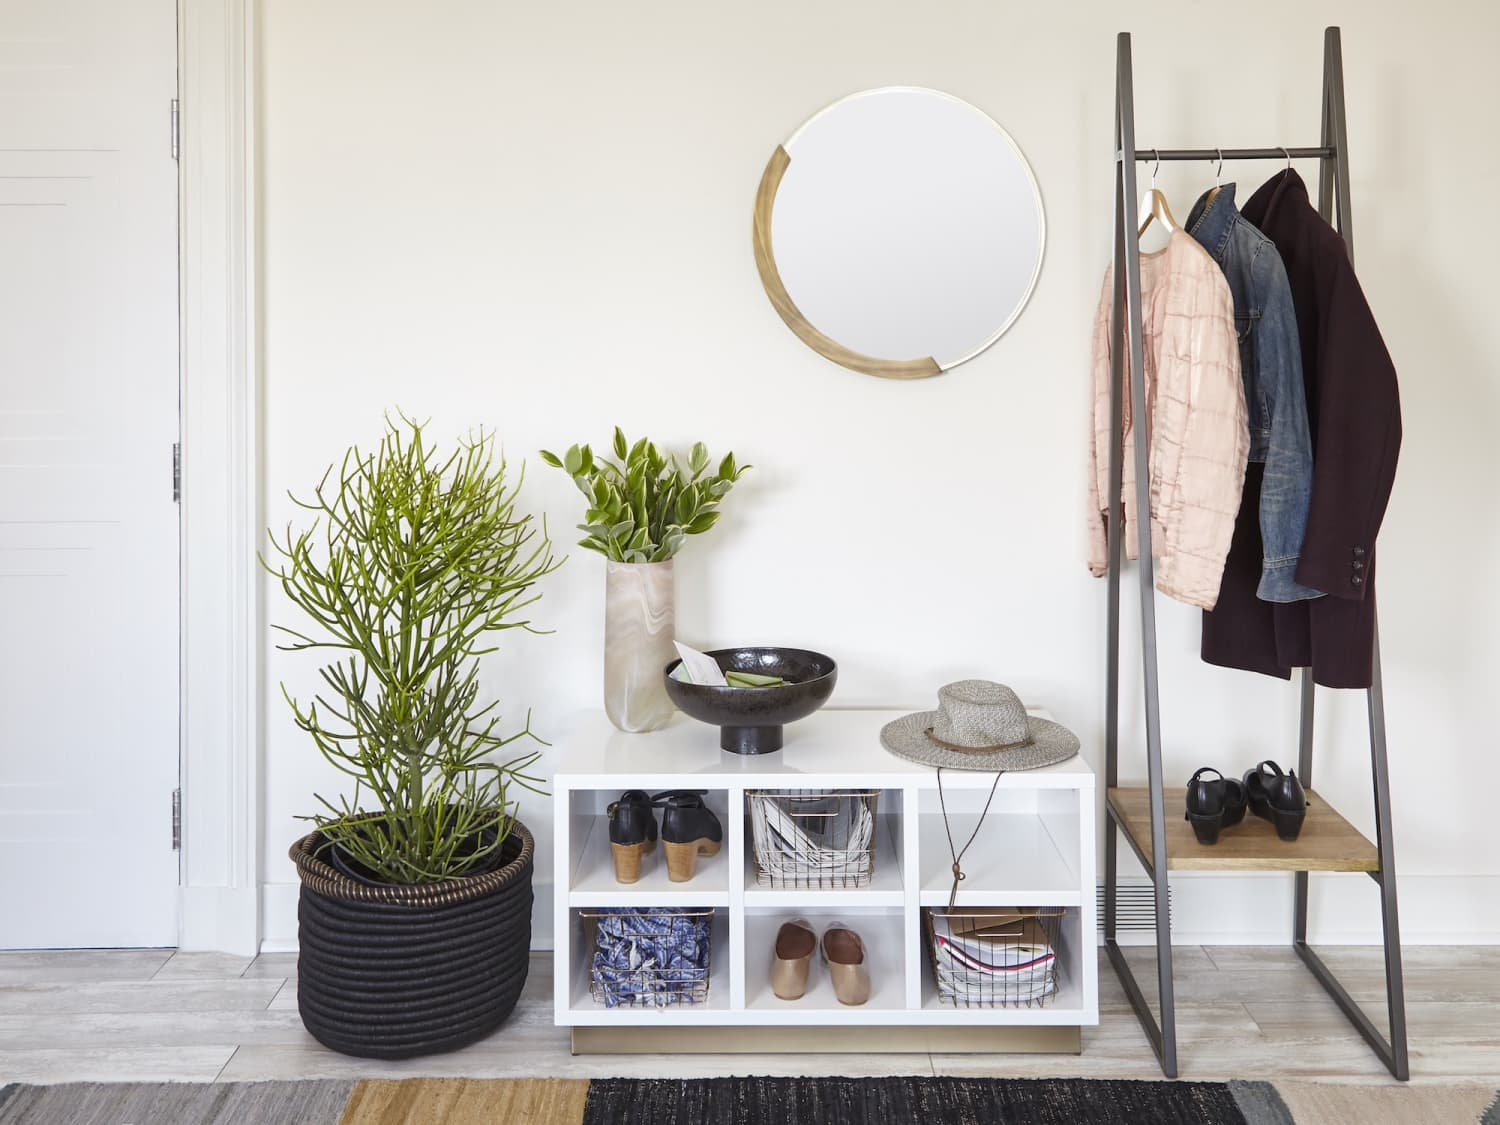 Thinking Through Double Duty Furniture In Small Spaces